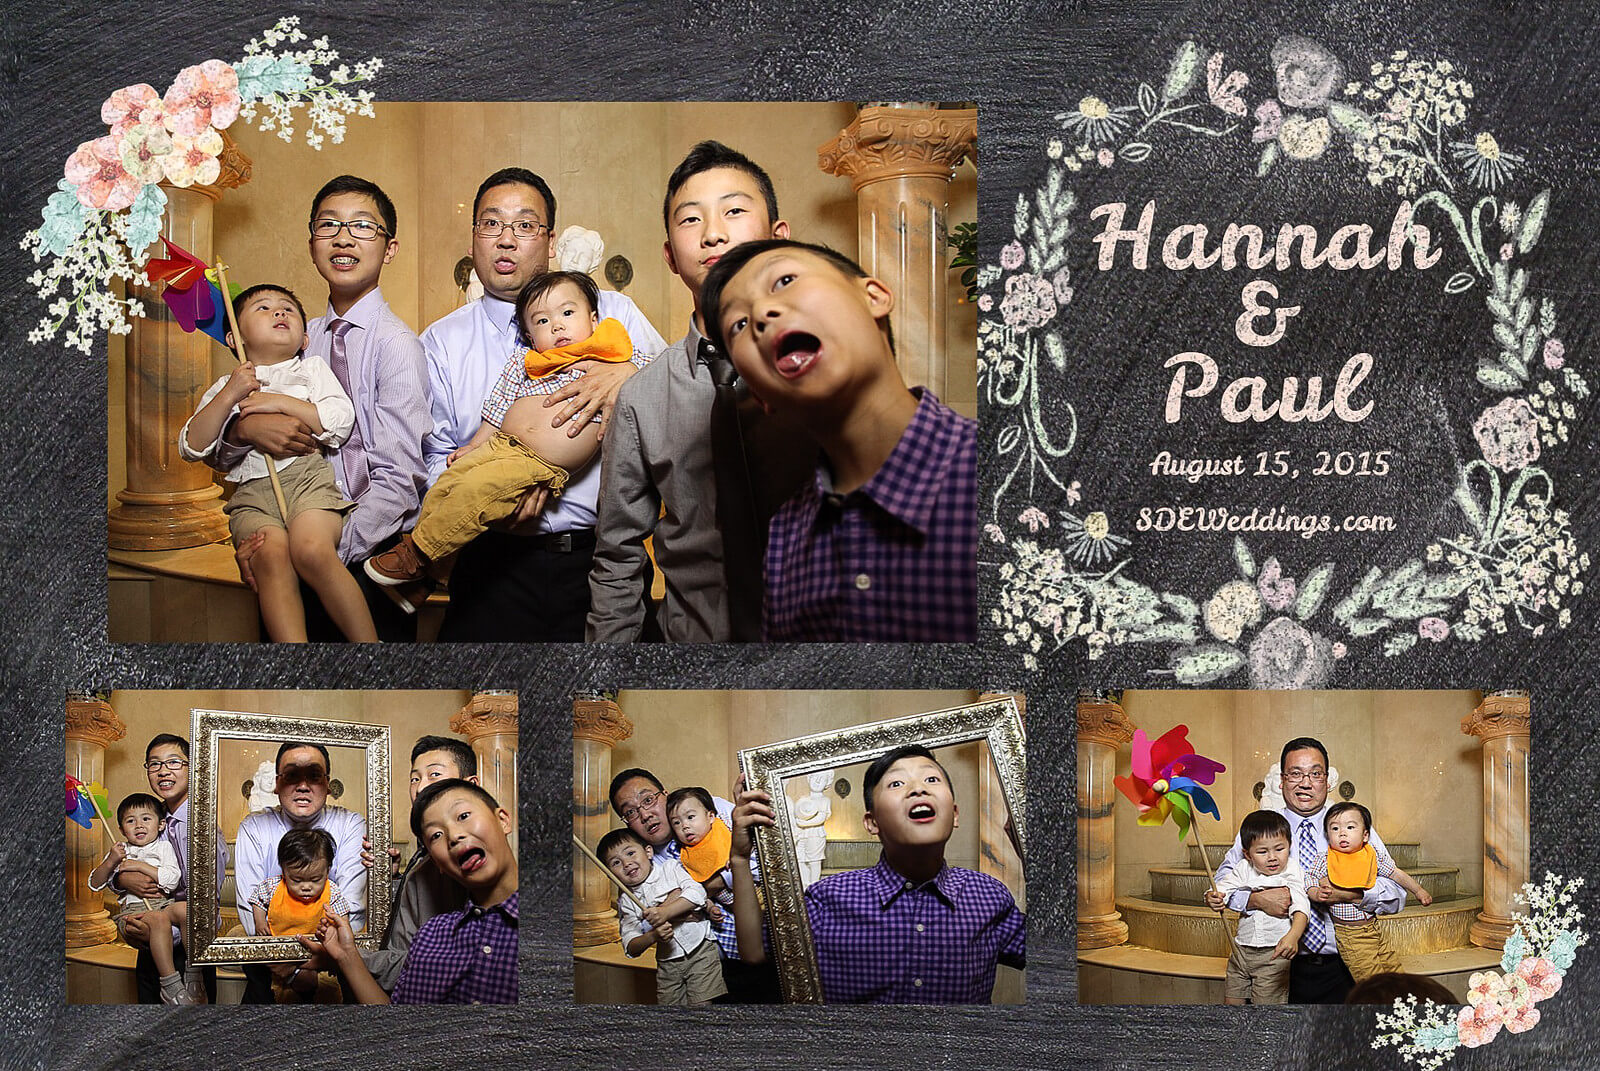 Markham Premiere Banquet Wedding Photobooth Rental 2